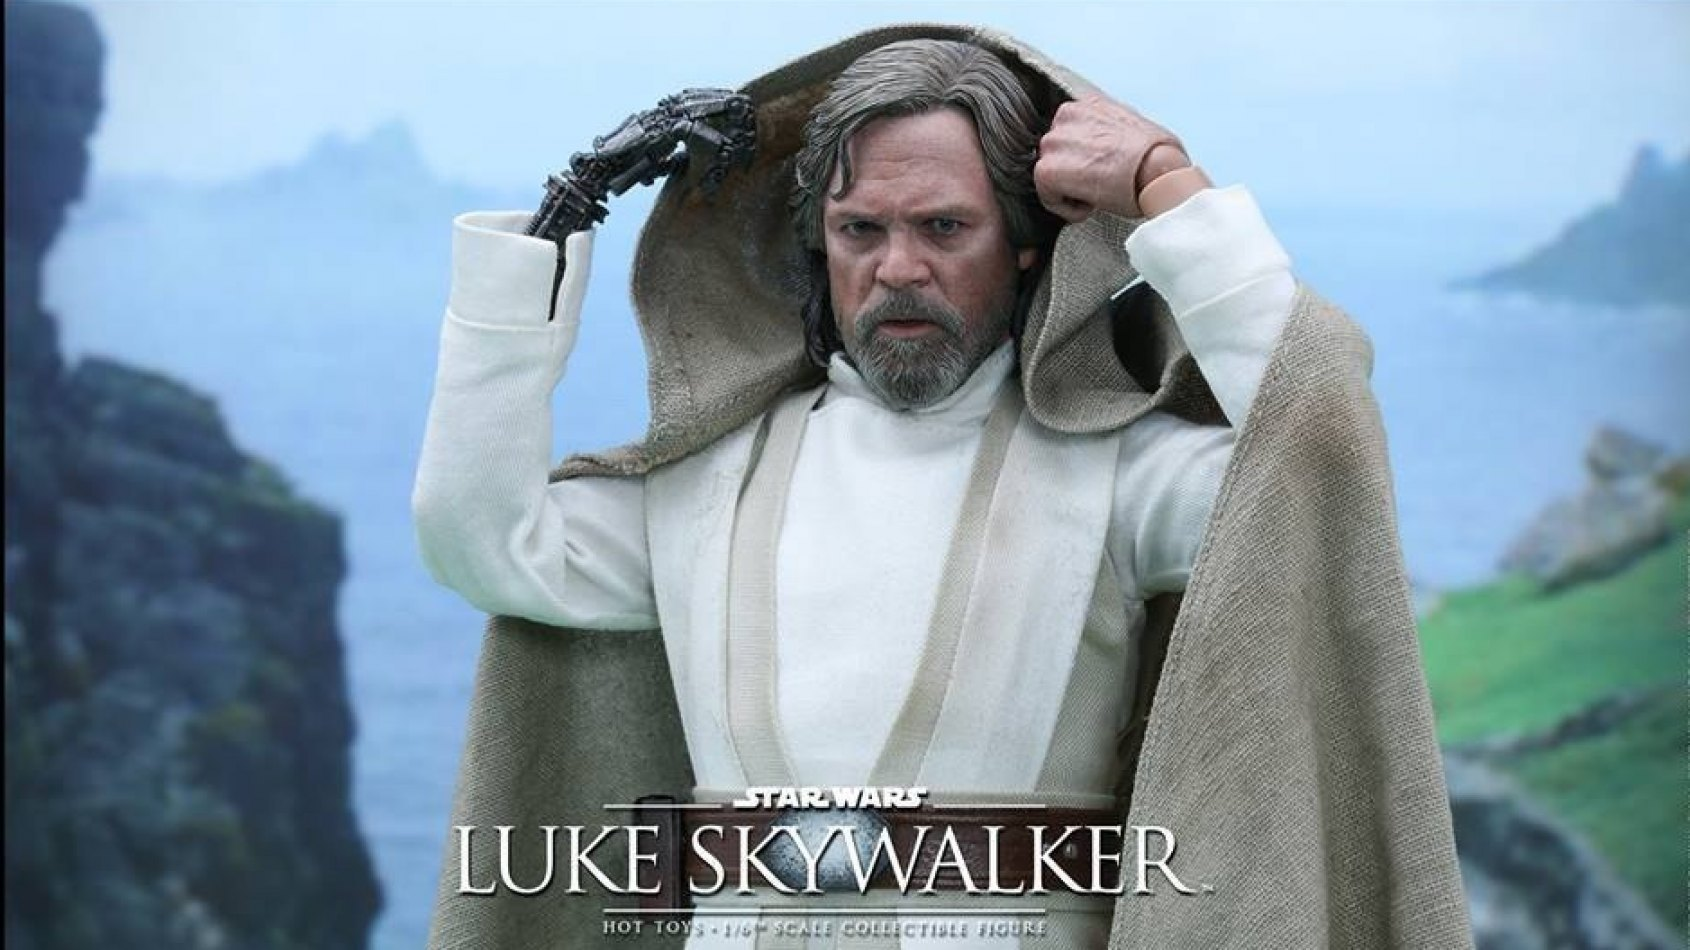 Hot Toys : La figurine de Luke Skywalker version Le Réveil de la Force